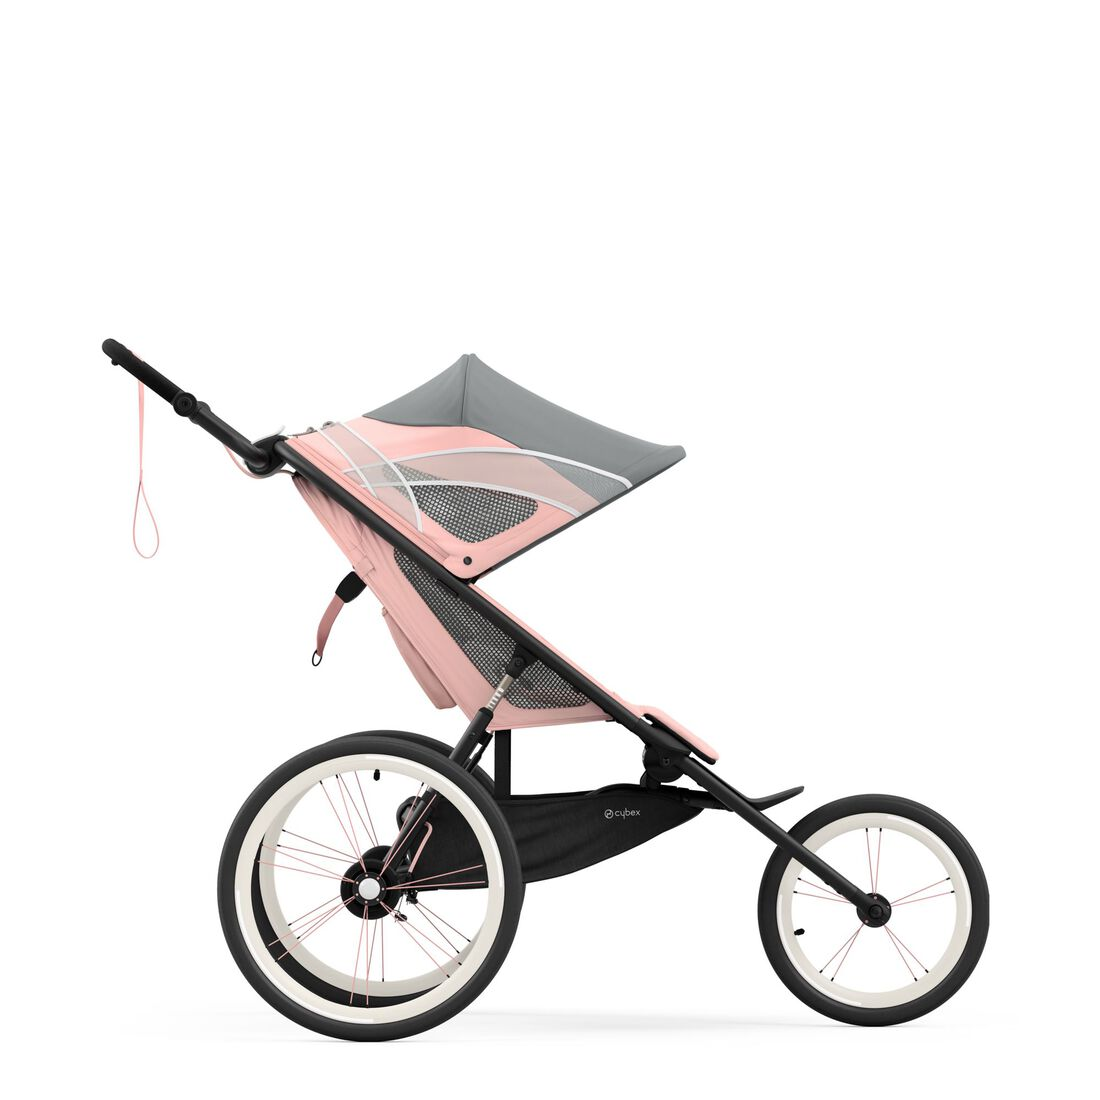 CYBEX Avi Frame - Black With Pink Details in Black With Pink Details large image number 4